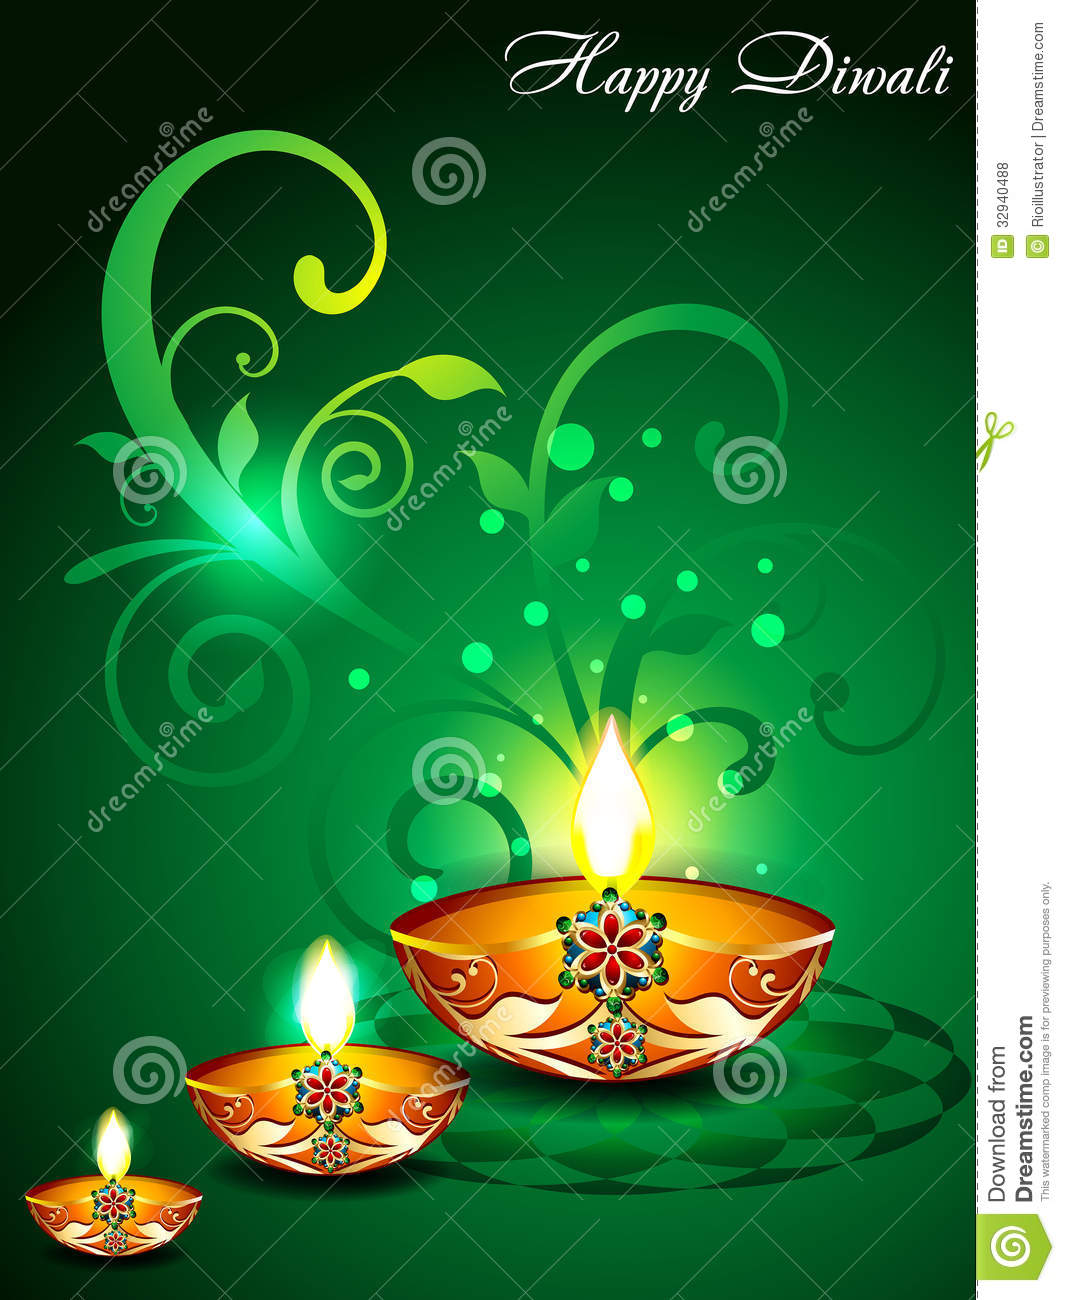 Hd Wallpaper Diwali Light Green Diwali Background With Floral Royalty Free Stock